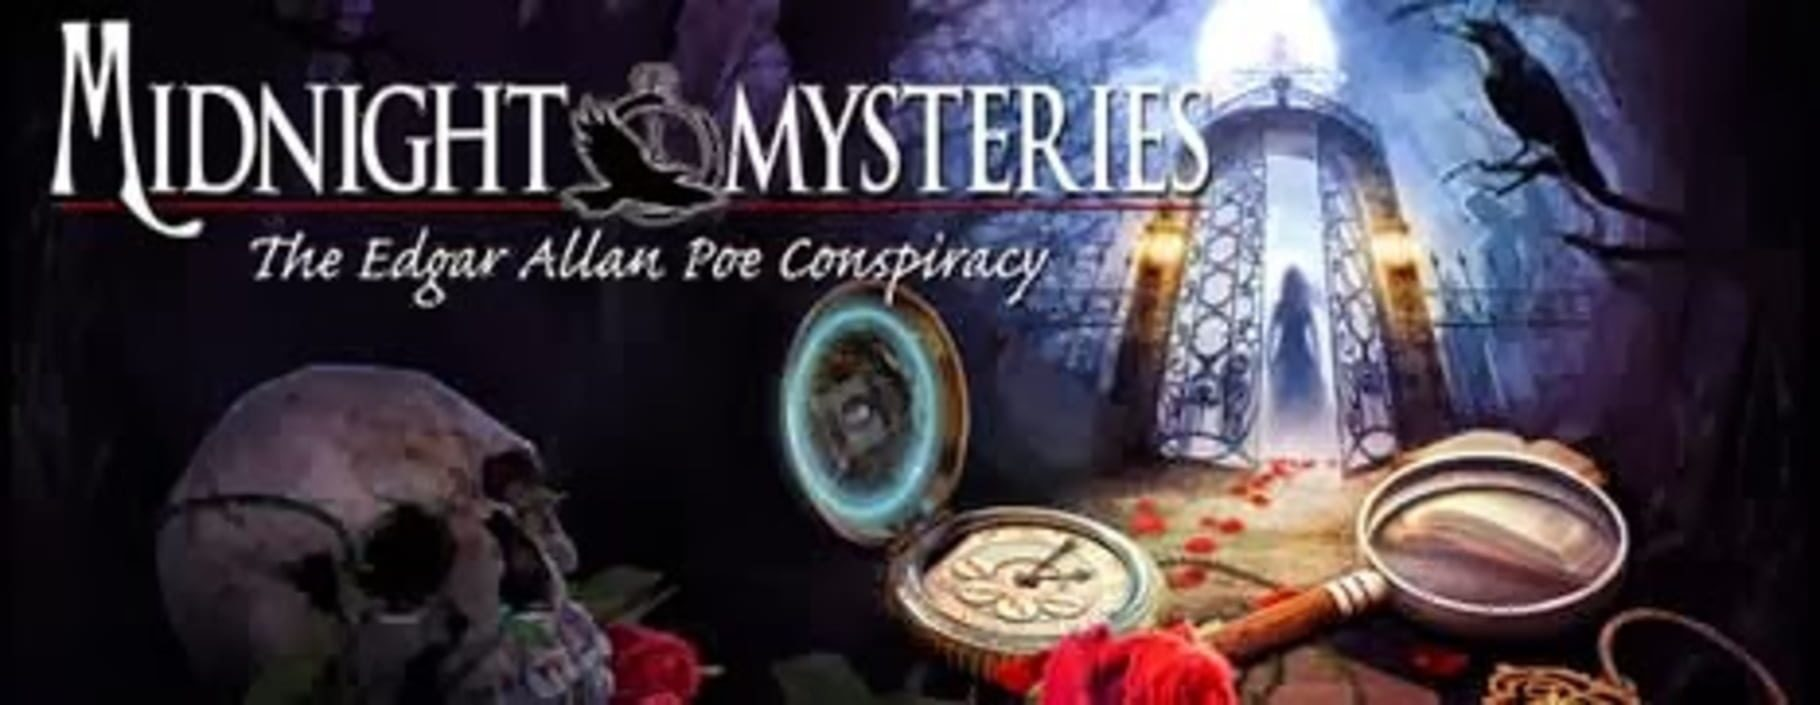 buy Midnight Mysteries: The Edgar Allan Poe Conspiracy cd key for all platform